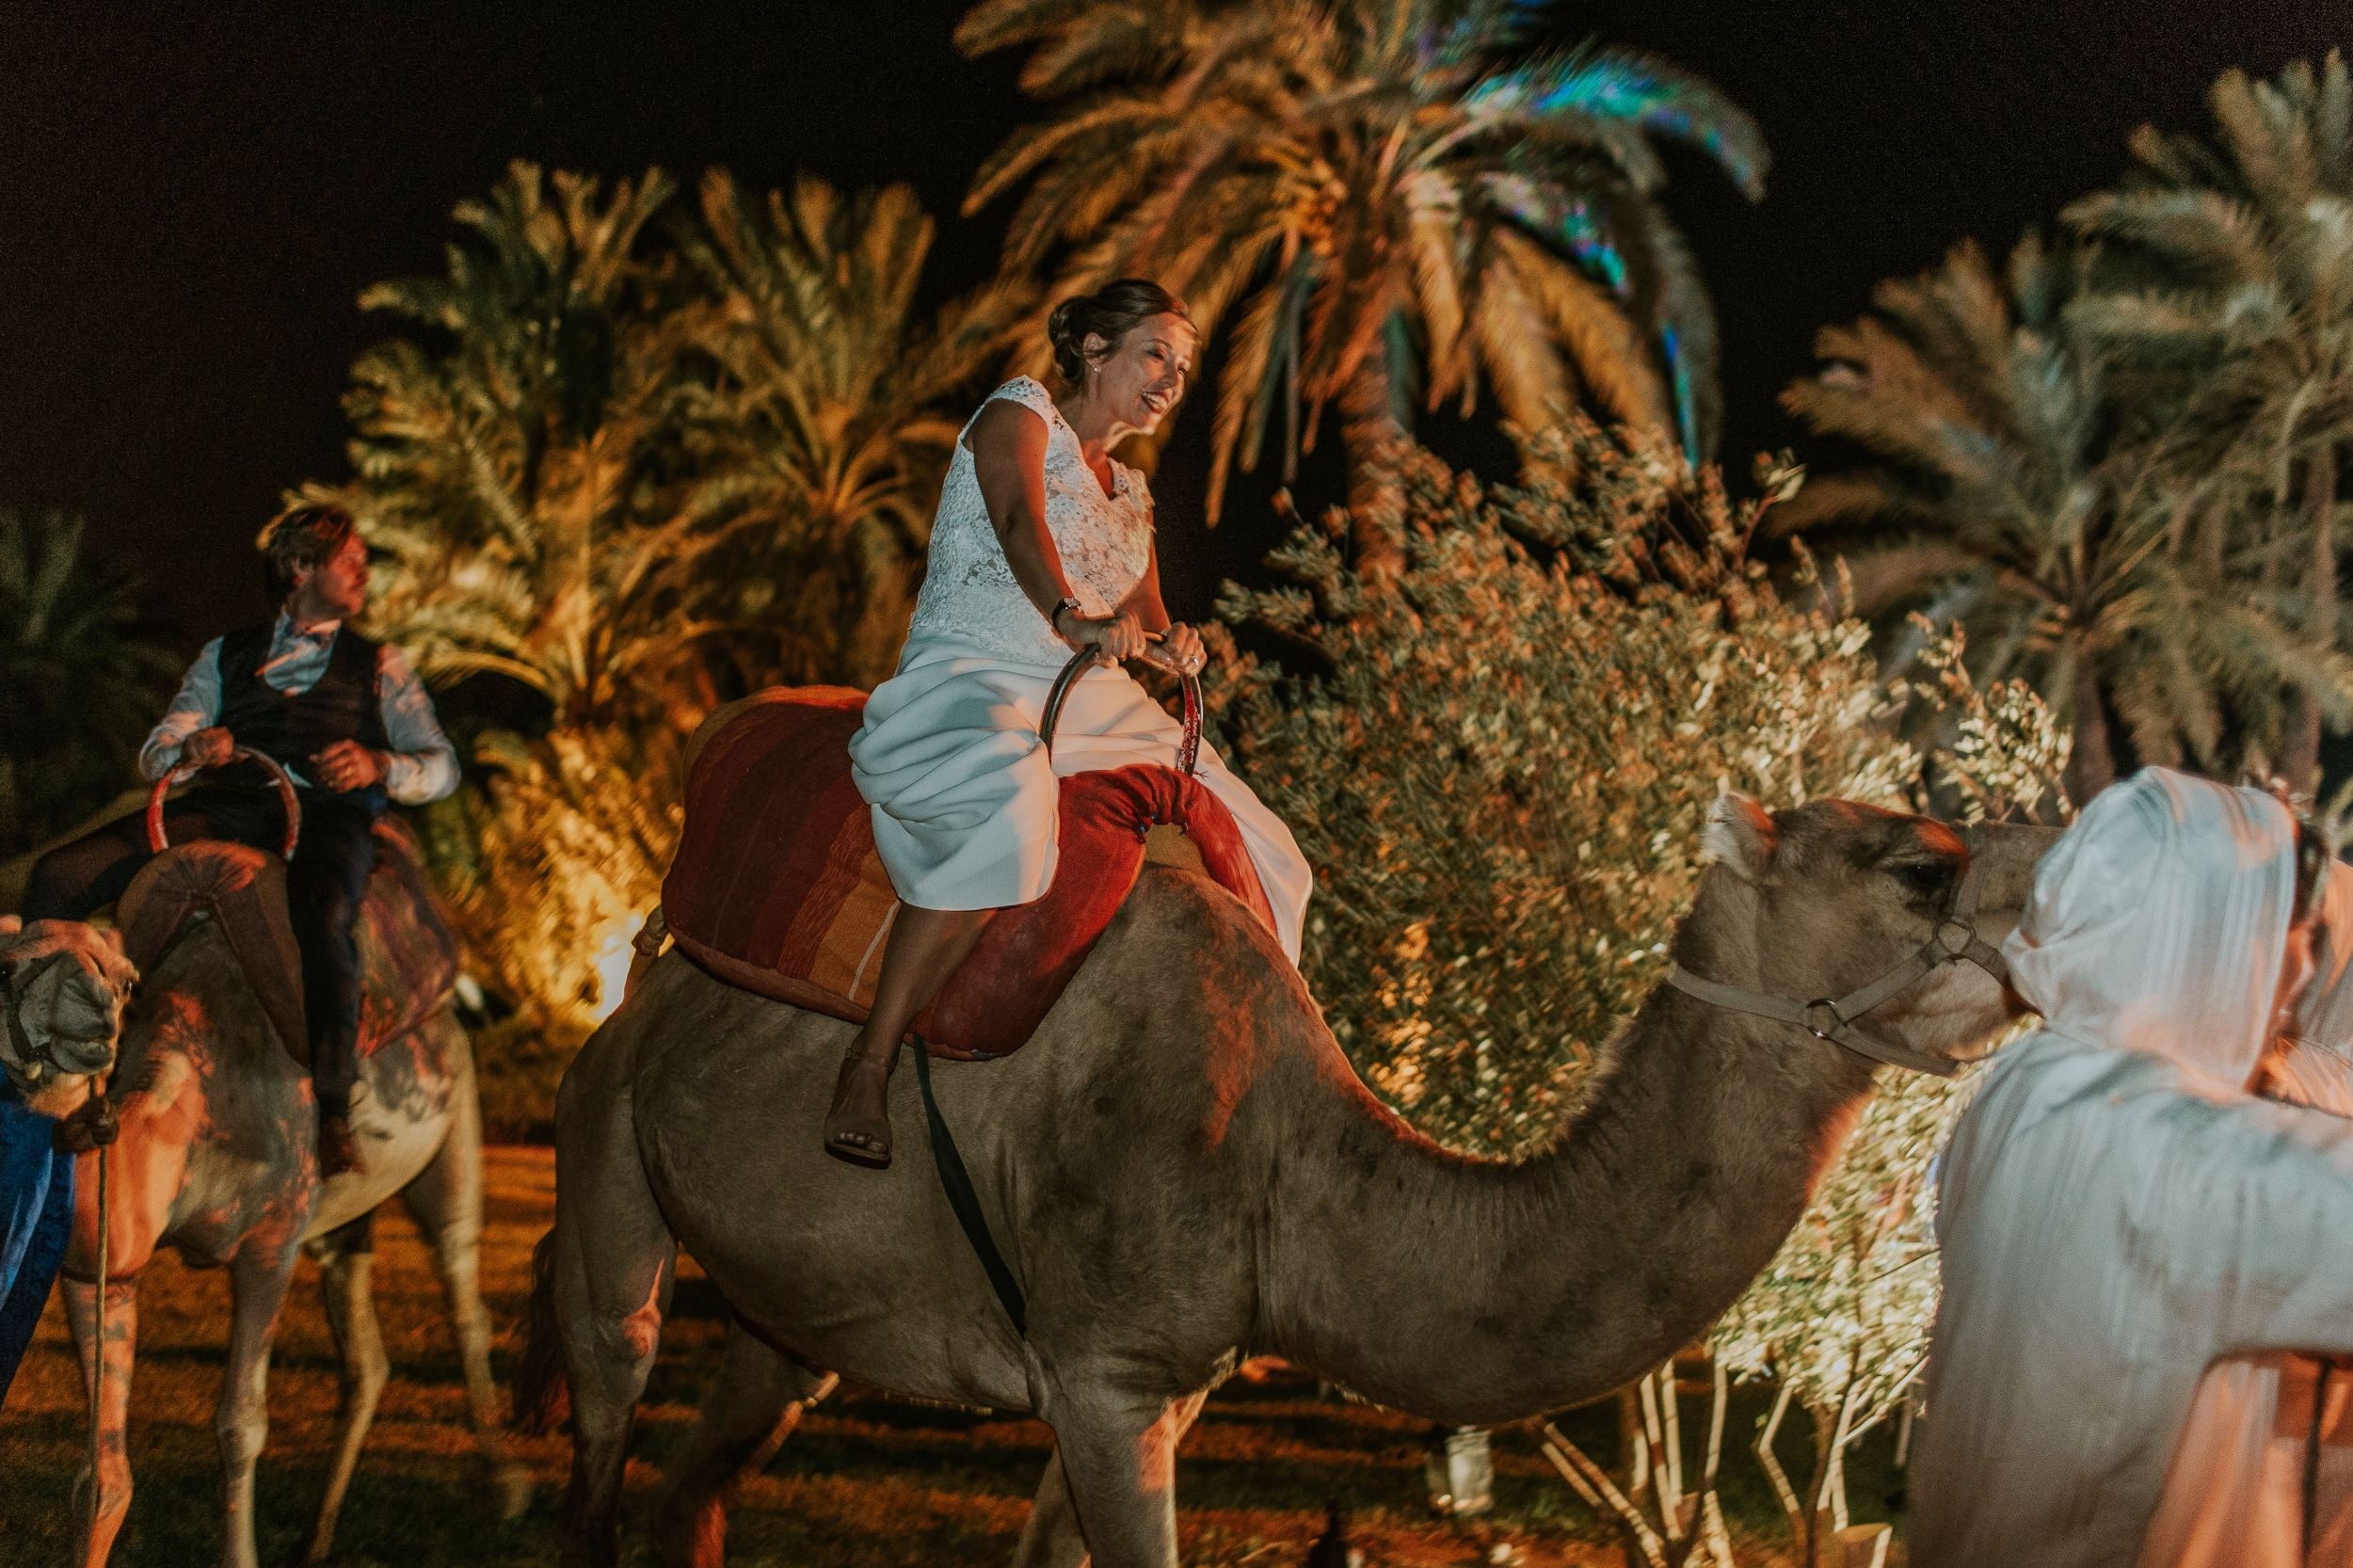 morganedimitri_davidmaire_marrakech_destinationwedding-258.jpg